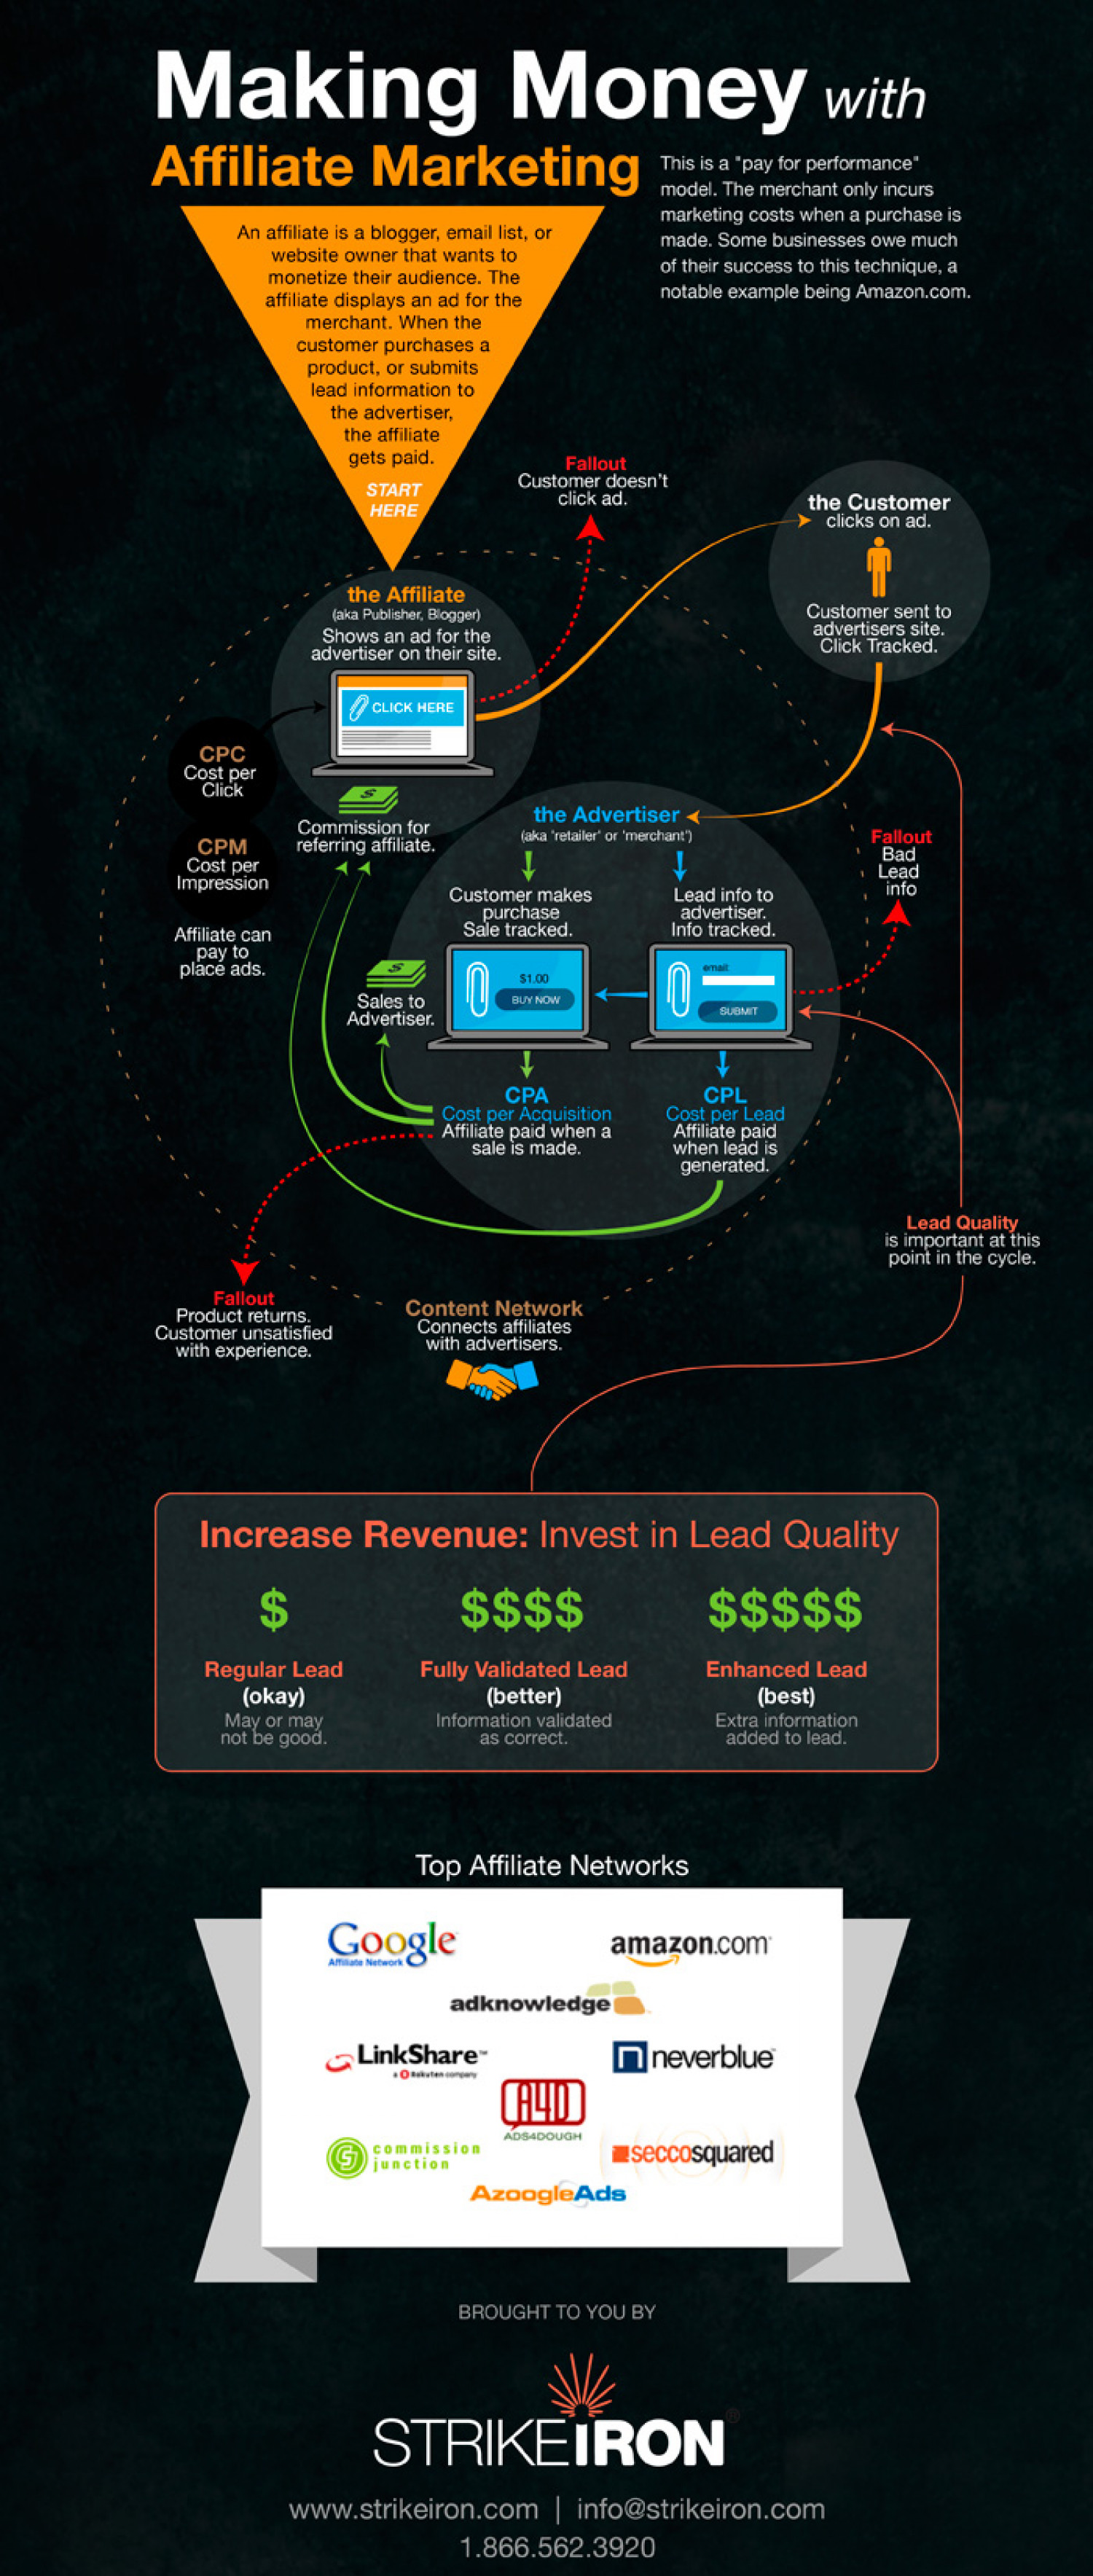 Making Money with Affiliate Marketing Infographic